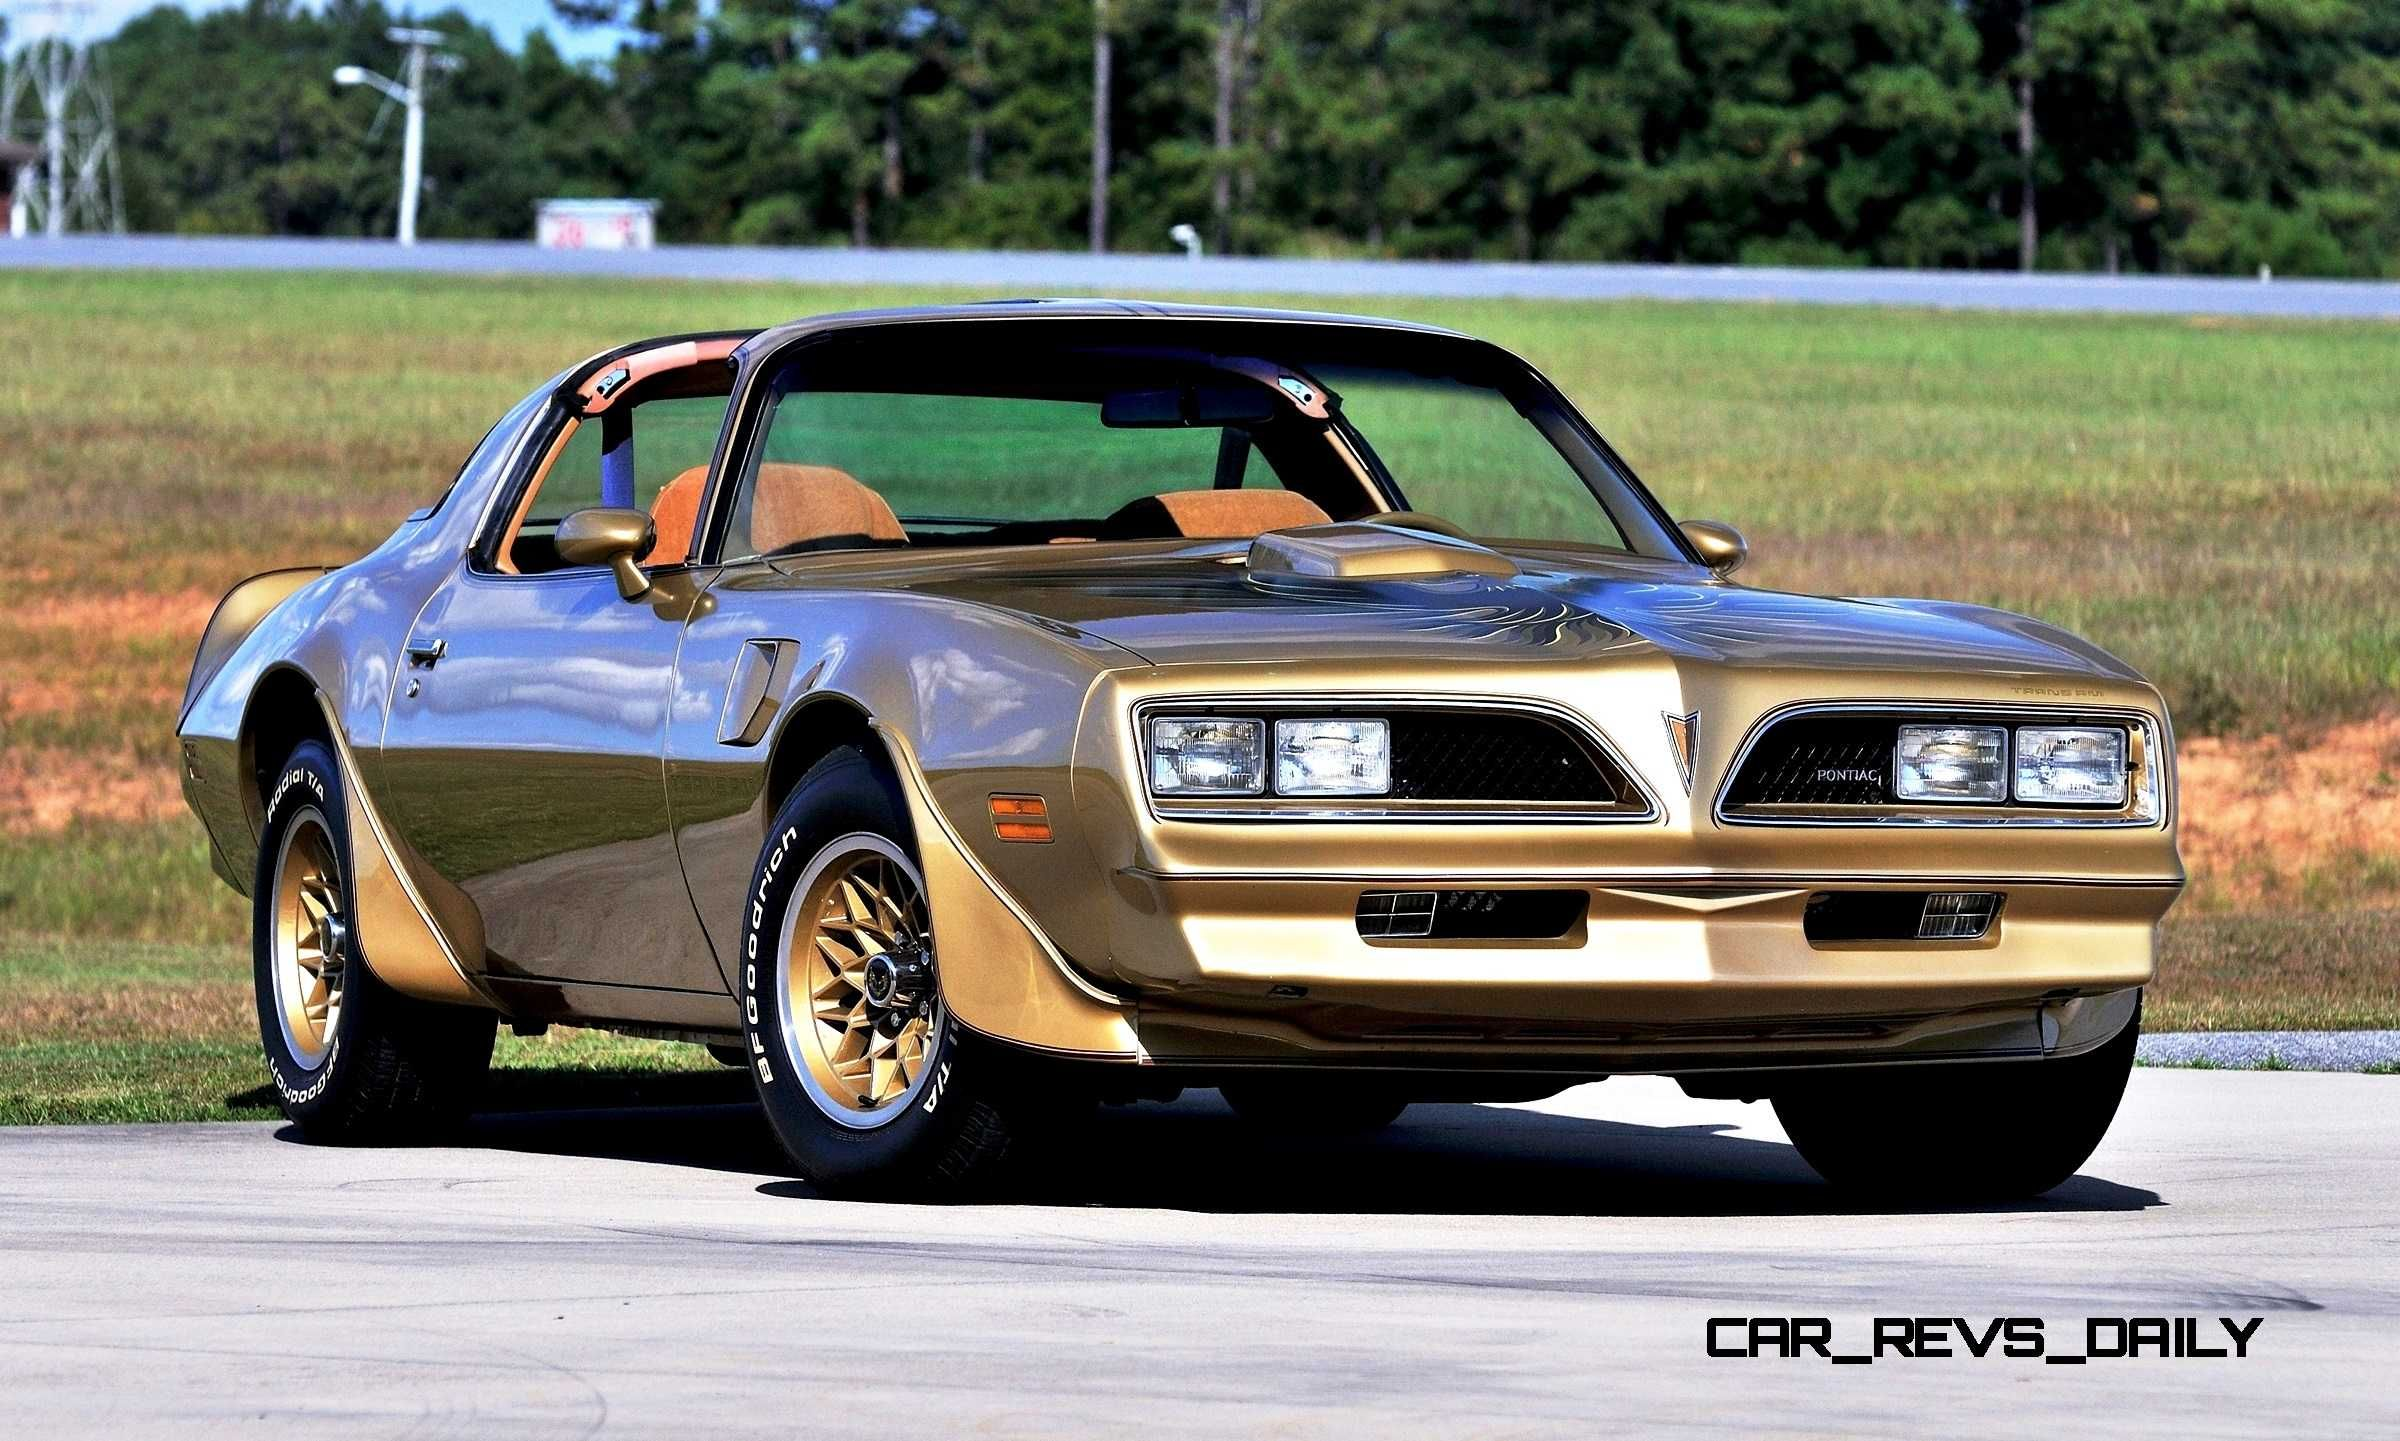 Colorful pictures of muscle cars 1978 pontiac gold special edition trans am classic muscle cars pinterest firebird cars and pontiac firebird